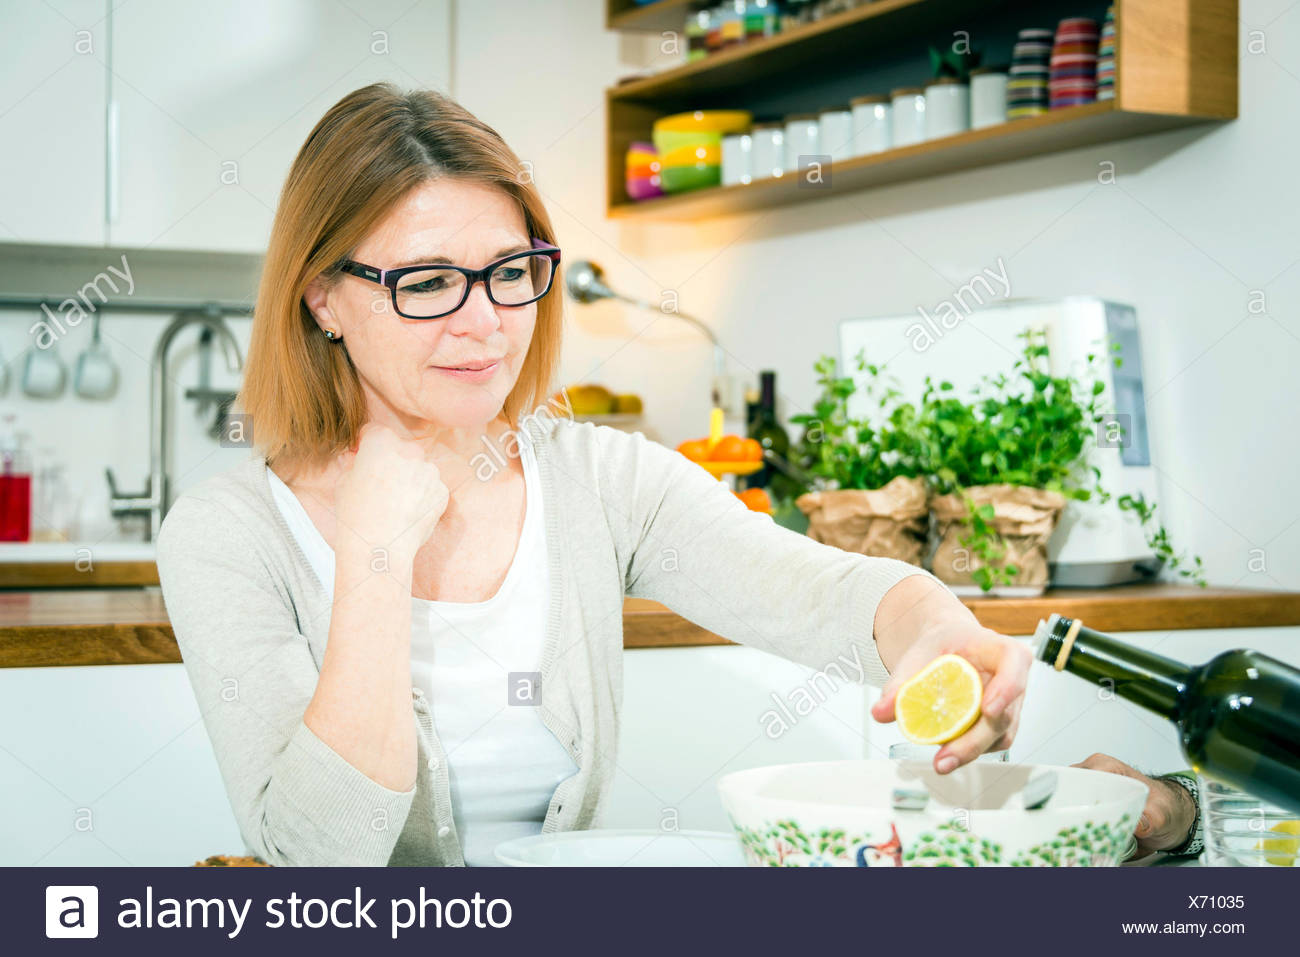 Senior woman holding lemon dans la main Photo Stock